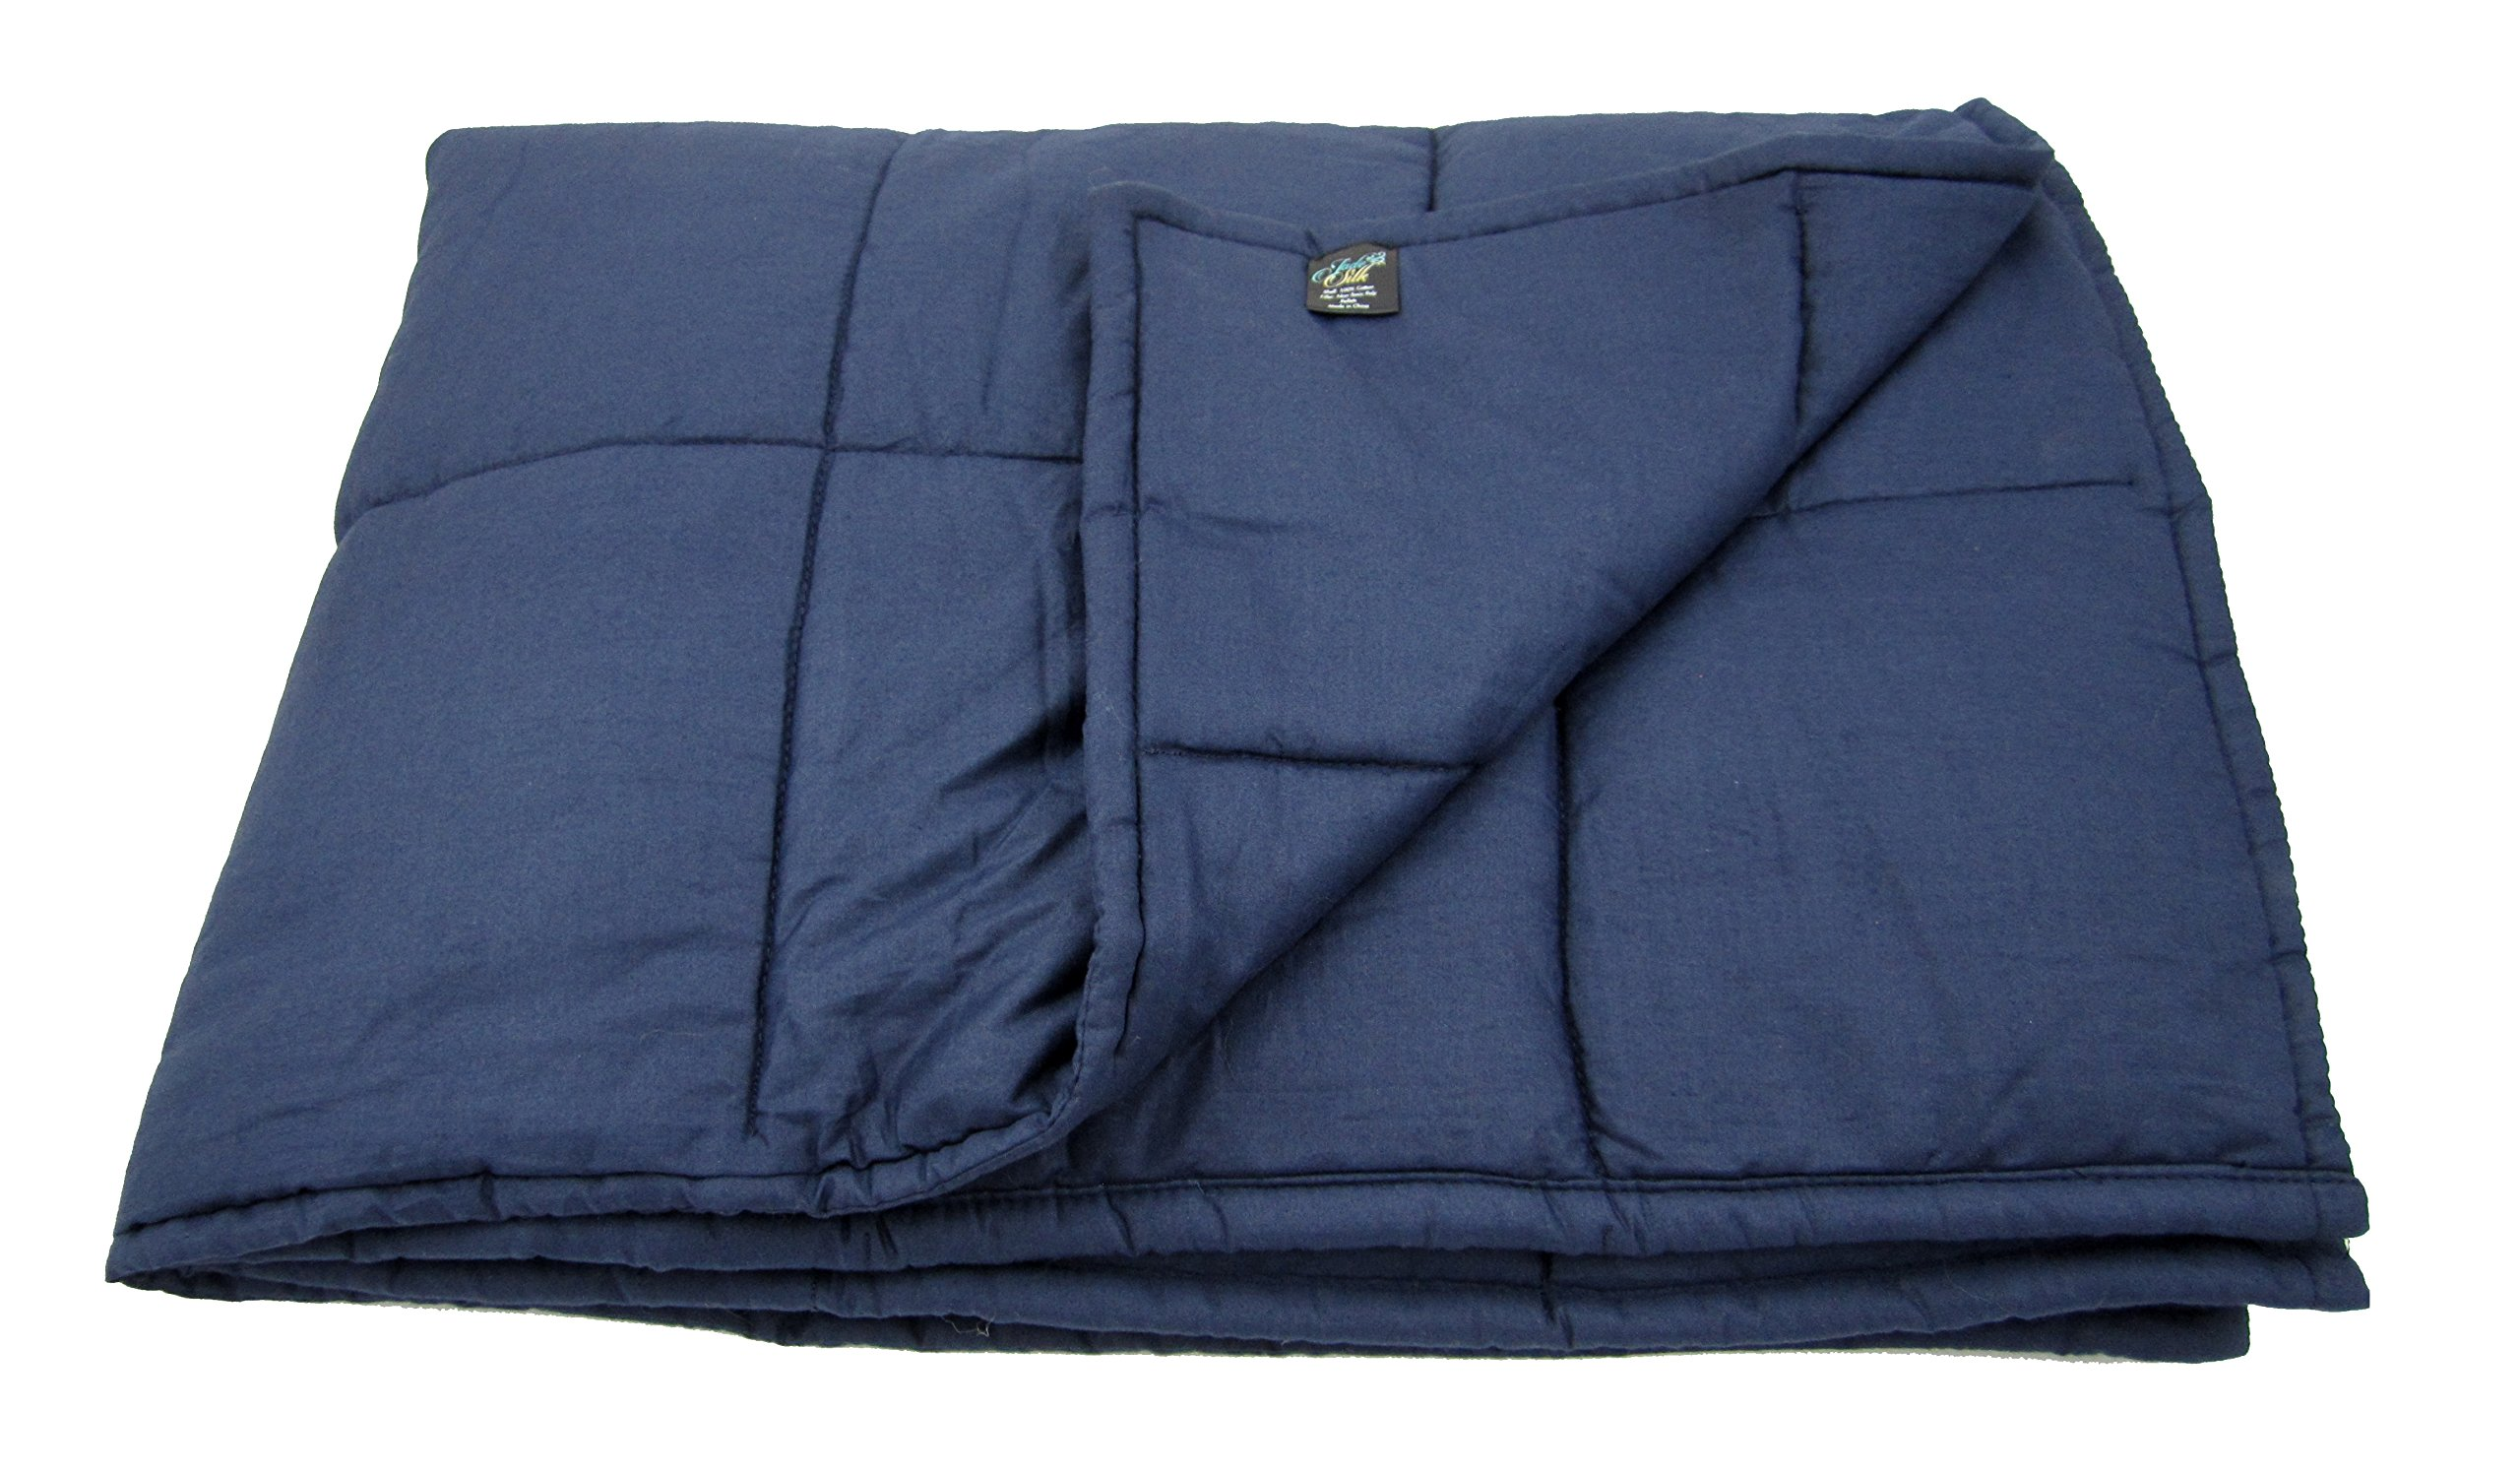 Weighted Blanket for Adults, 10lb, Cotton, Stress and Anxiety Relief, Helps Calm AAD, ADHD, Autism By Jade Silk by Jade Silk (Image #4)